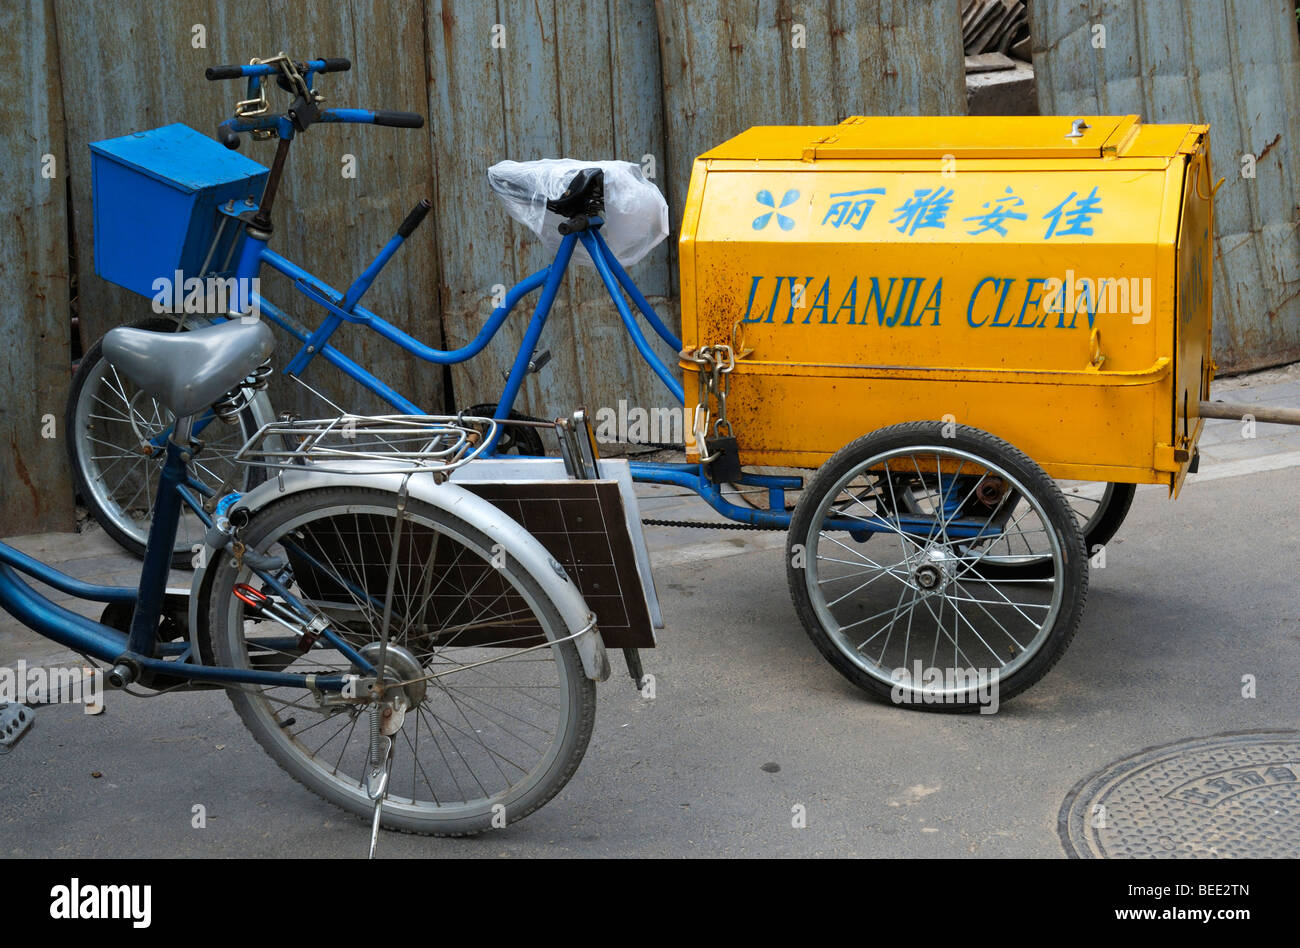 The traditional type of Chinese street cleaning, Beijing, China - Stock Image